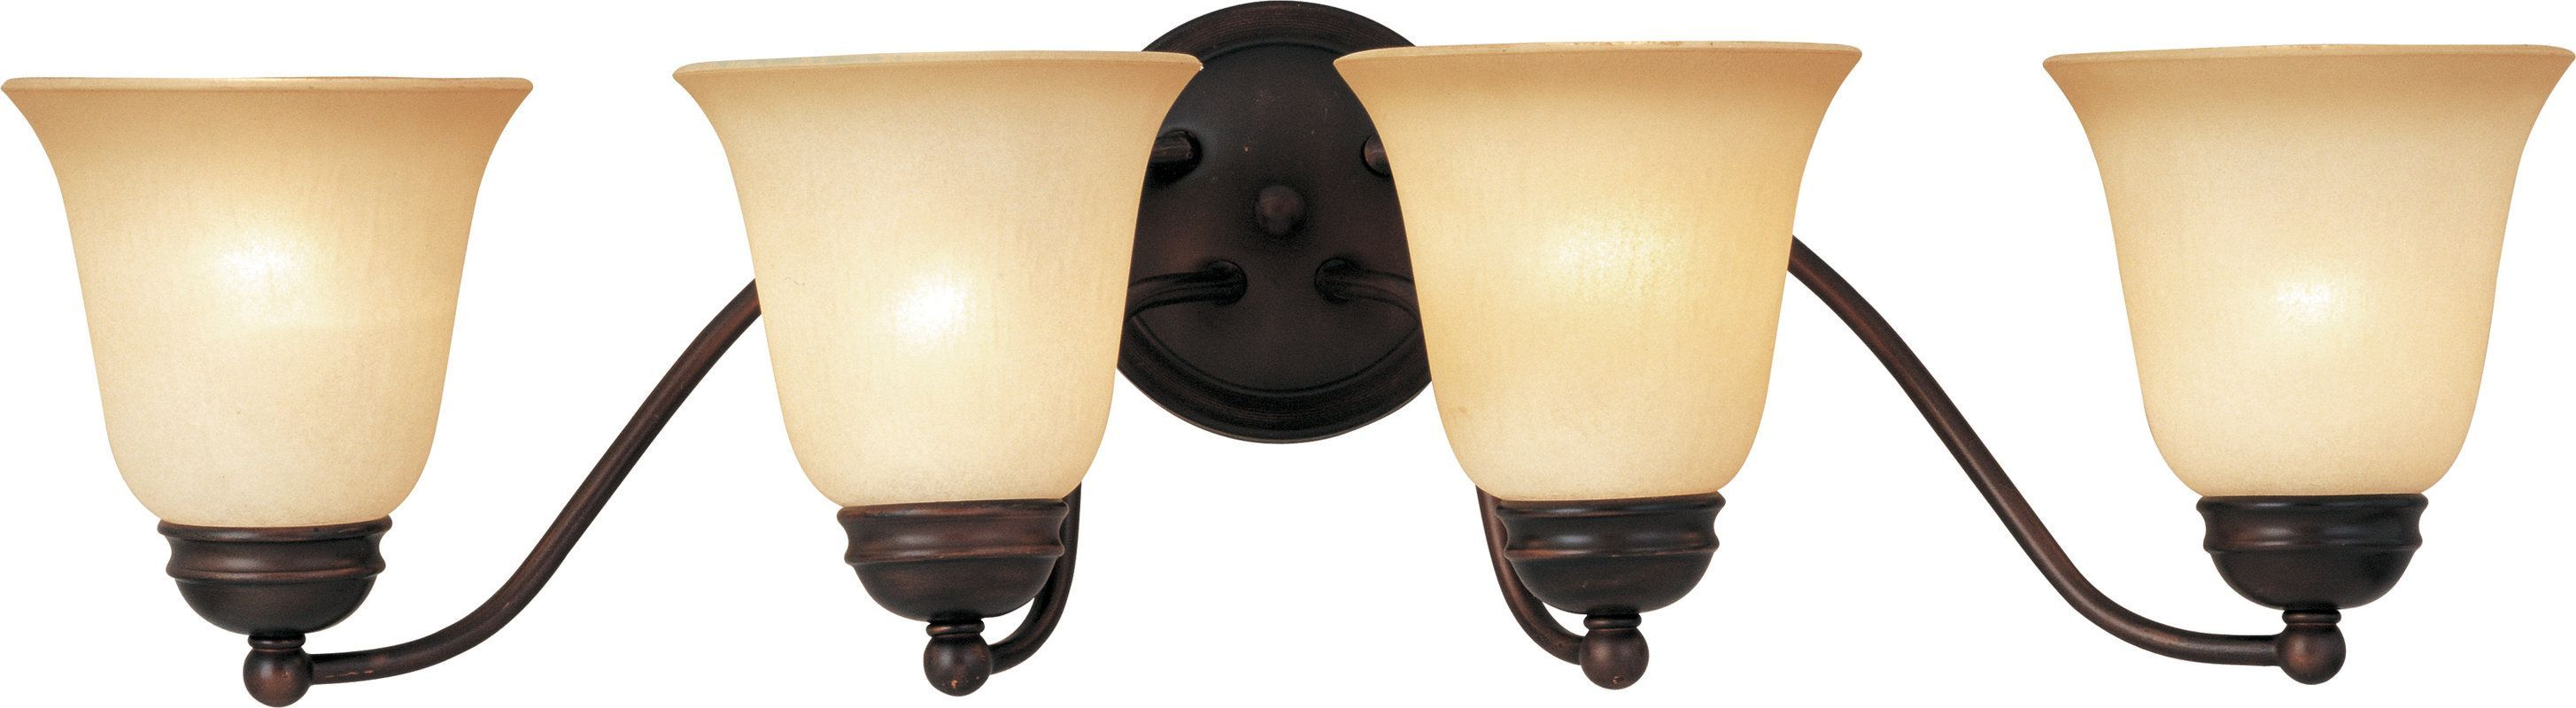 "Photo of Maxim 2123WSOI Oil Rubbed Bronze / Wilshire Glass Basix 27 ""Wide Bath Light"